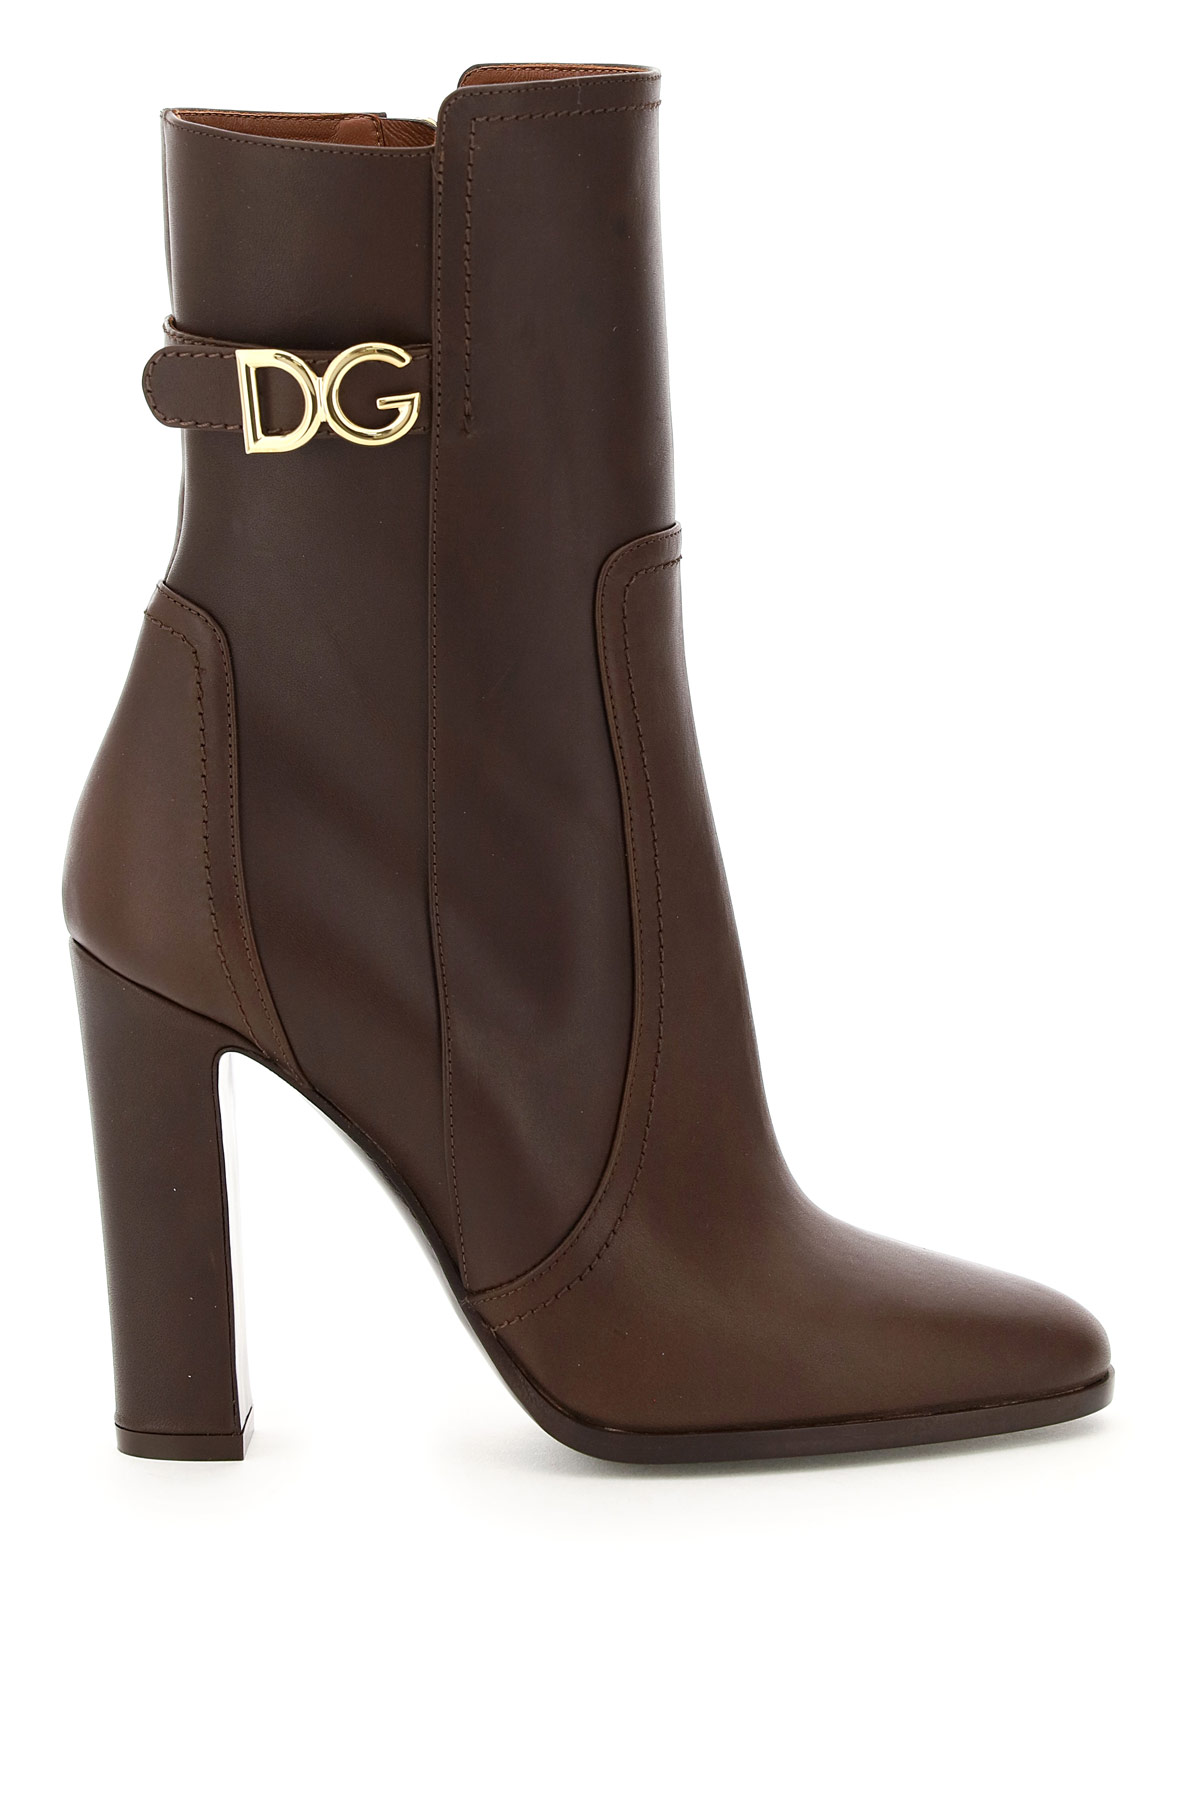 DOLCE & GABBANA DG CAROLINE ANKLE BOOTS 37 Brown, Purple Leather